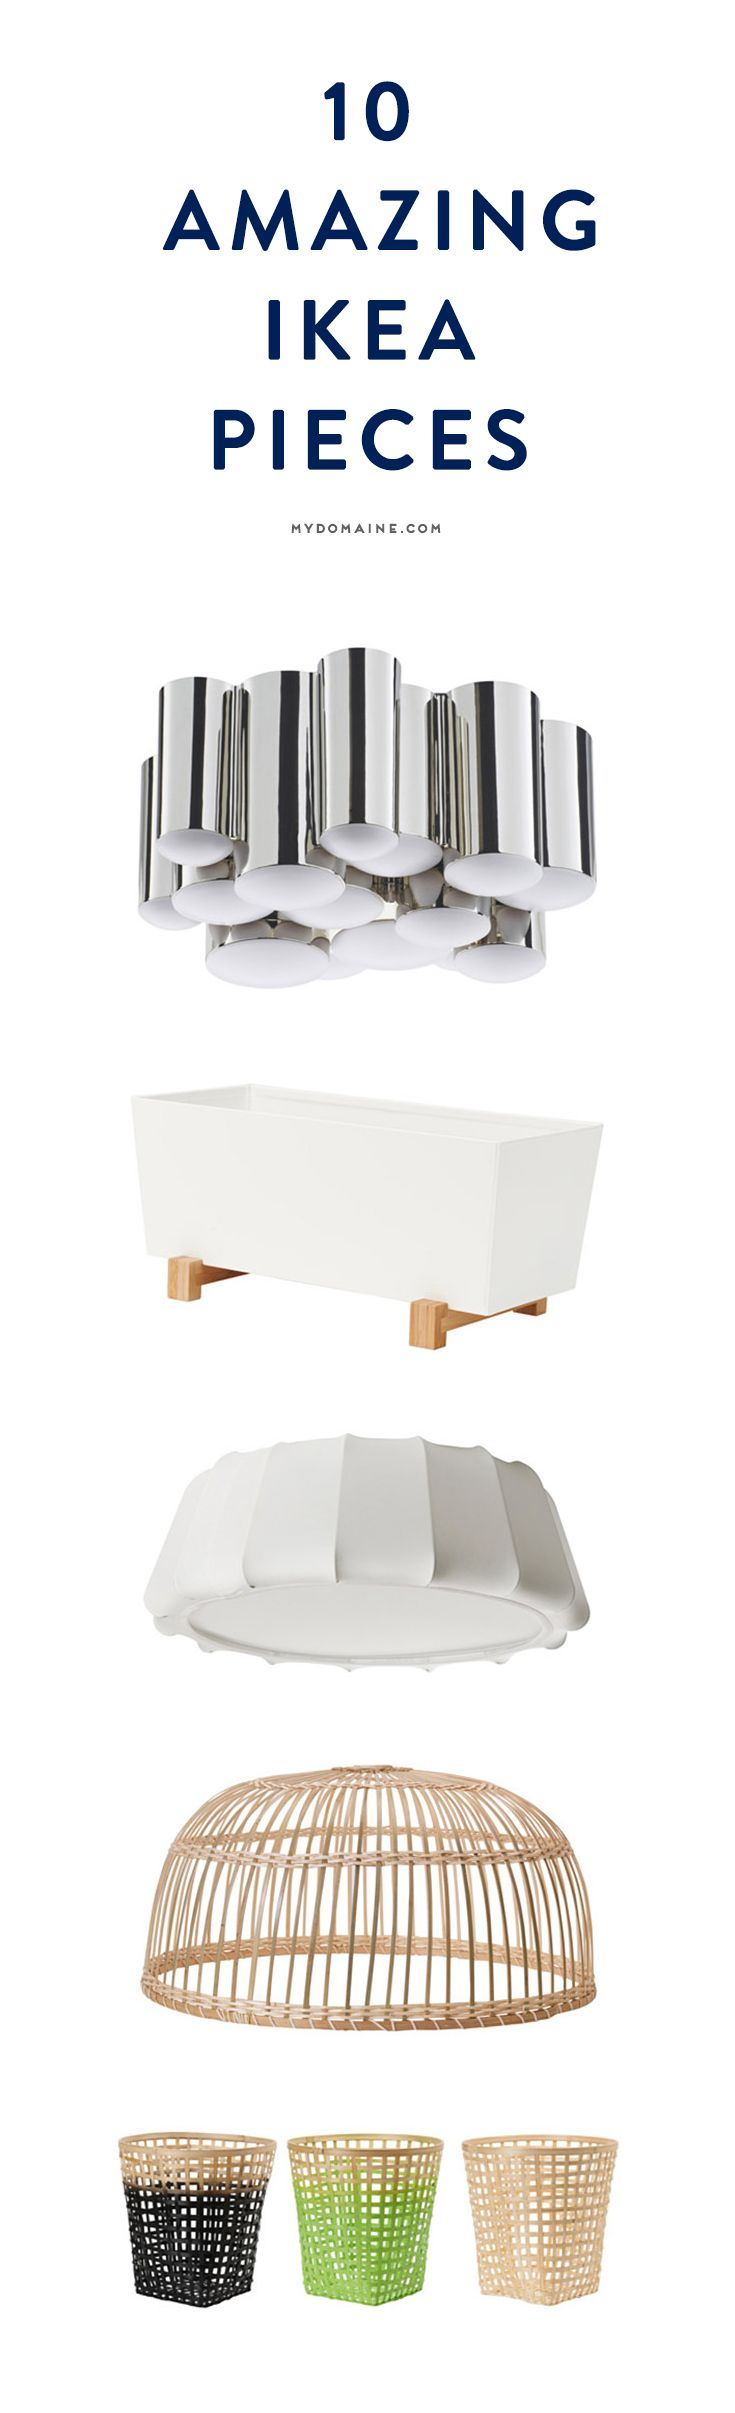 169 best images about ikea favorites on pinterest